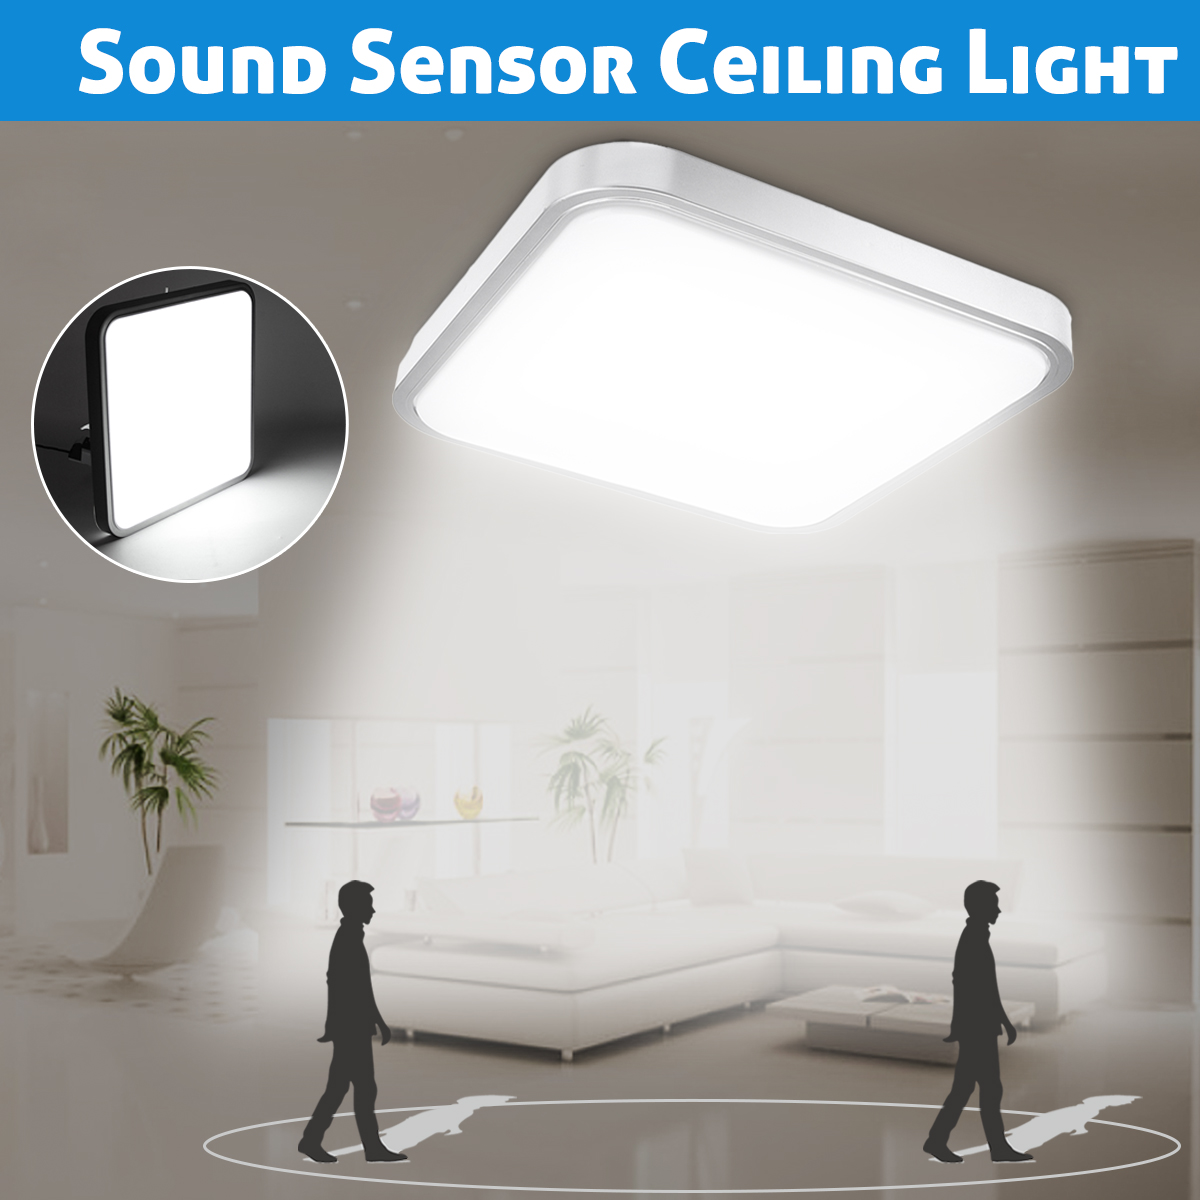 15W 18W 24W Flush Mount Square Ceiling Lamp Sound Control PIR Motion Sensor Modern LED Ceiling Lights For Living Room Bedroom new safurance 15w led infrared pir sensor ceiling mount lamp light ac110 265v for room building automation home security